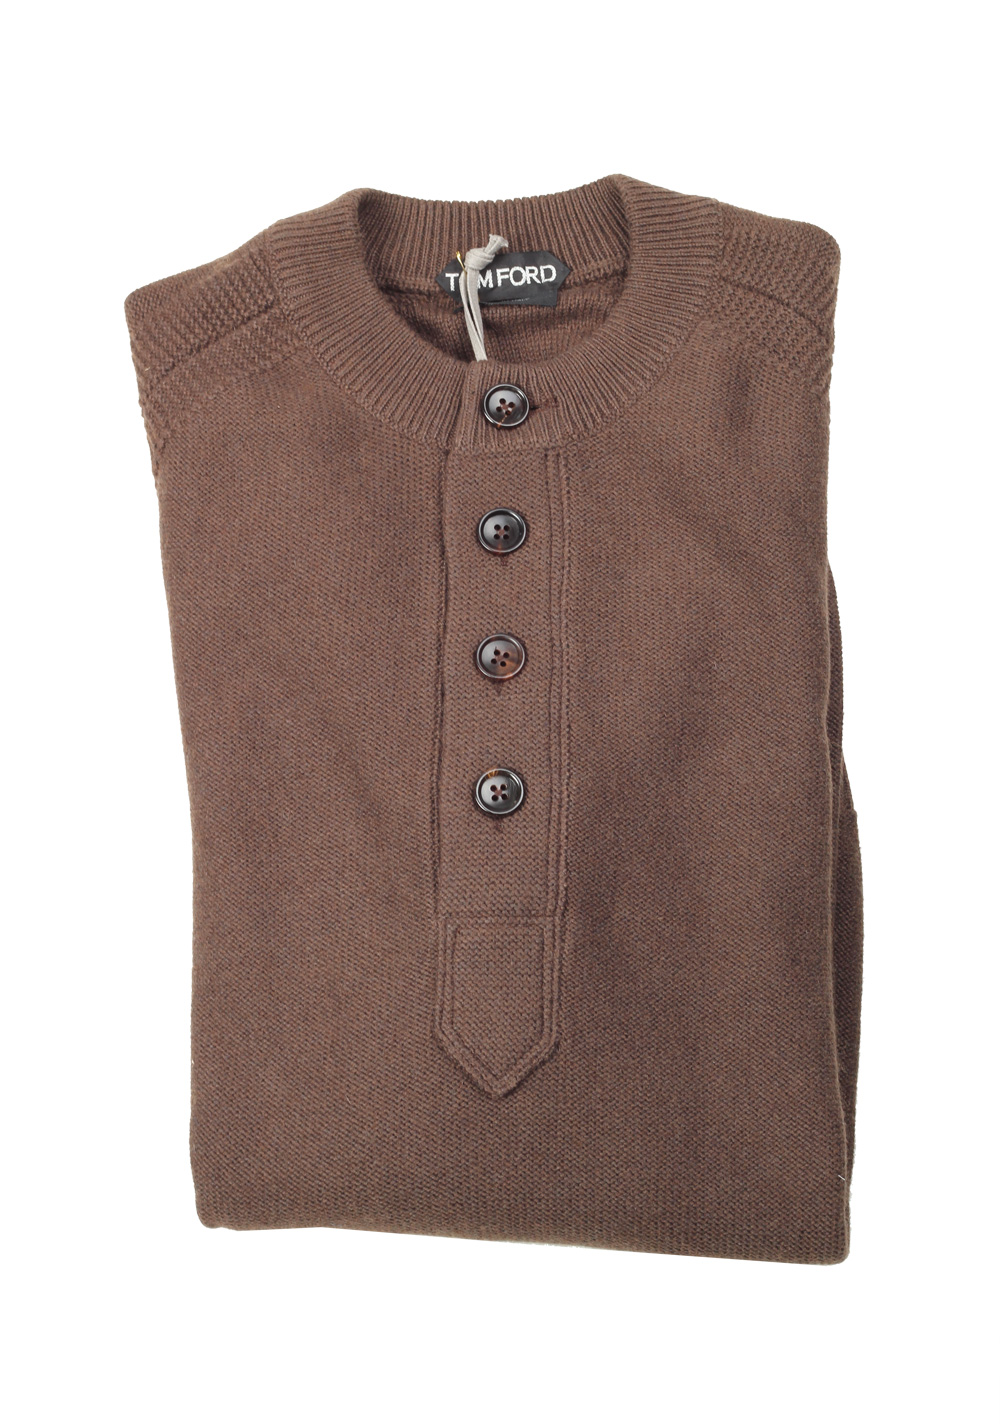 TOM FORD Brown Long Sleeve Henley Sweater Size 48 / 38R U.S. In Silk Cashmere Blend | Costume Limité